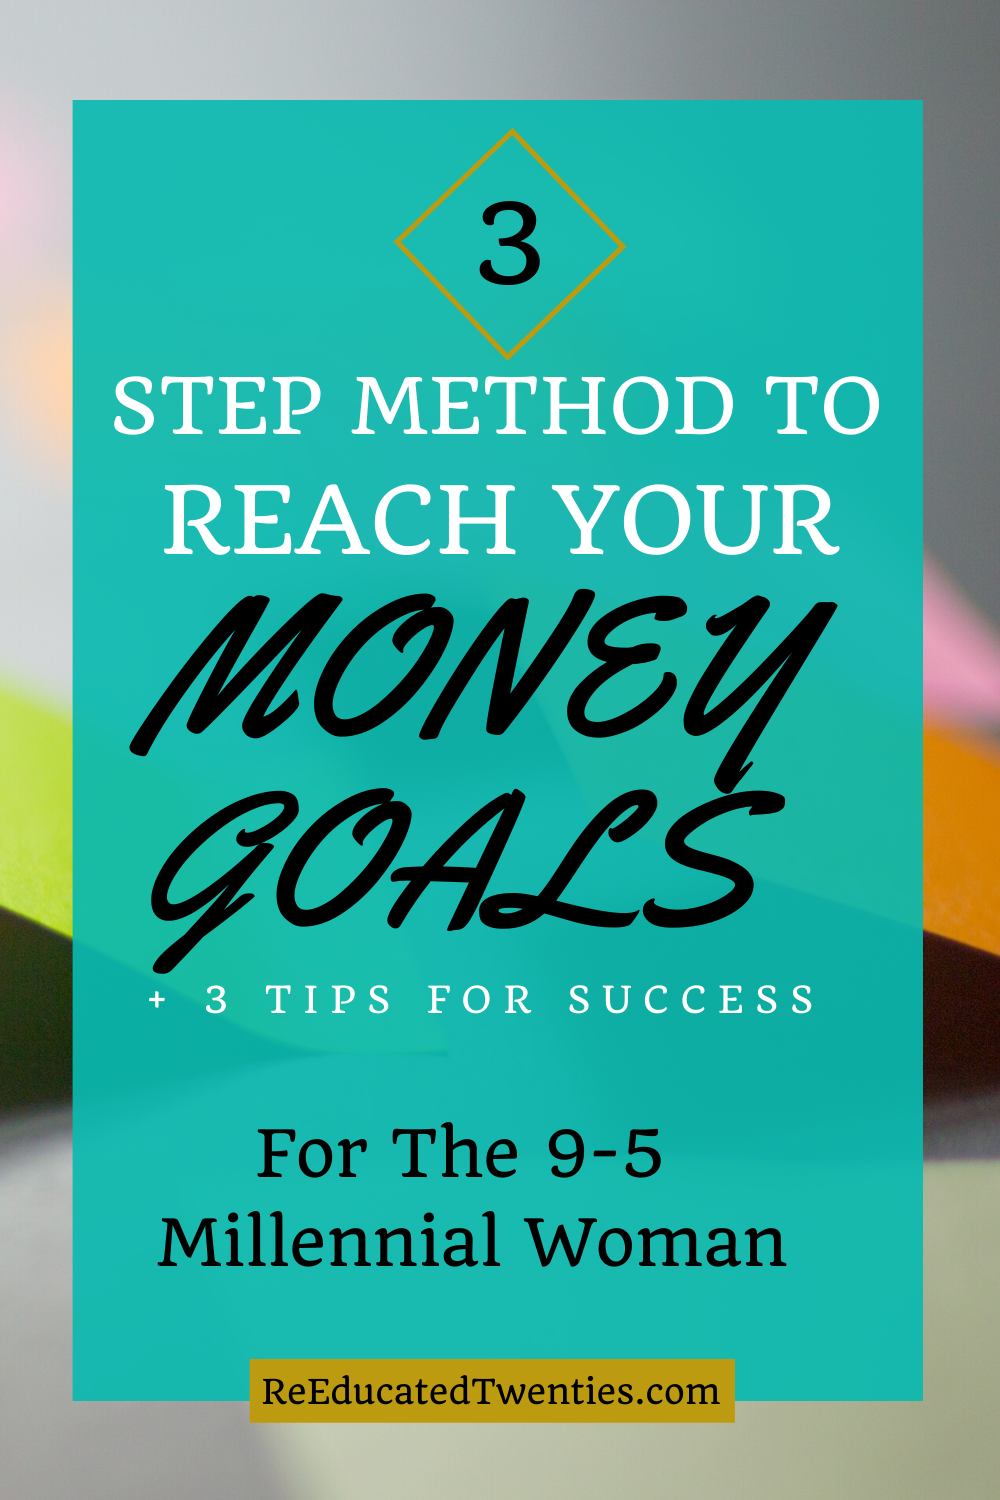 3 Step Money Goals Method for the 9-5 Millennial Woman by ReEducated Twenties. #PersonalFinance #Millennials #budgeting #moneygoals